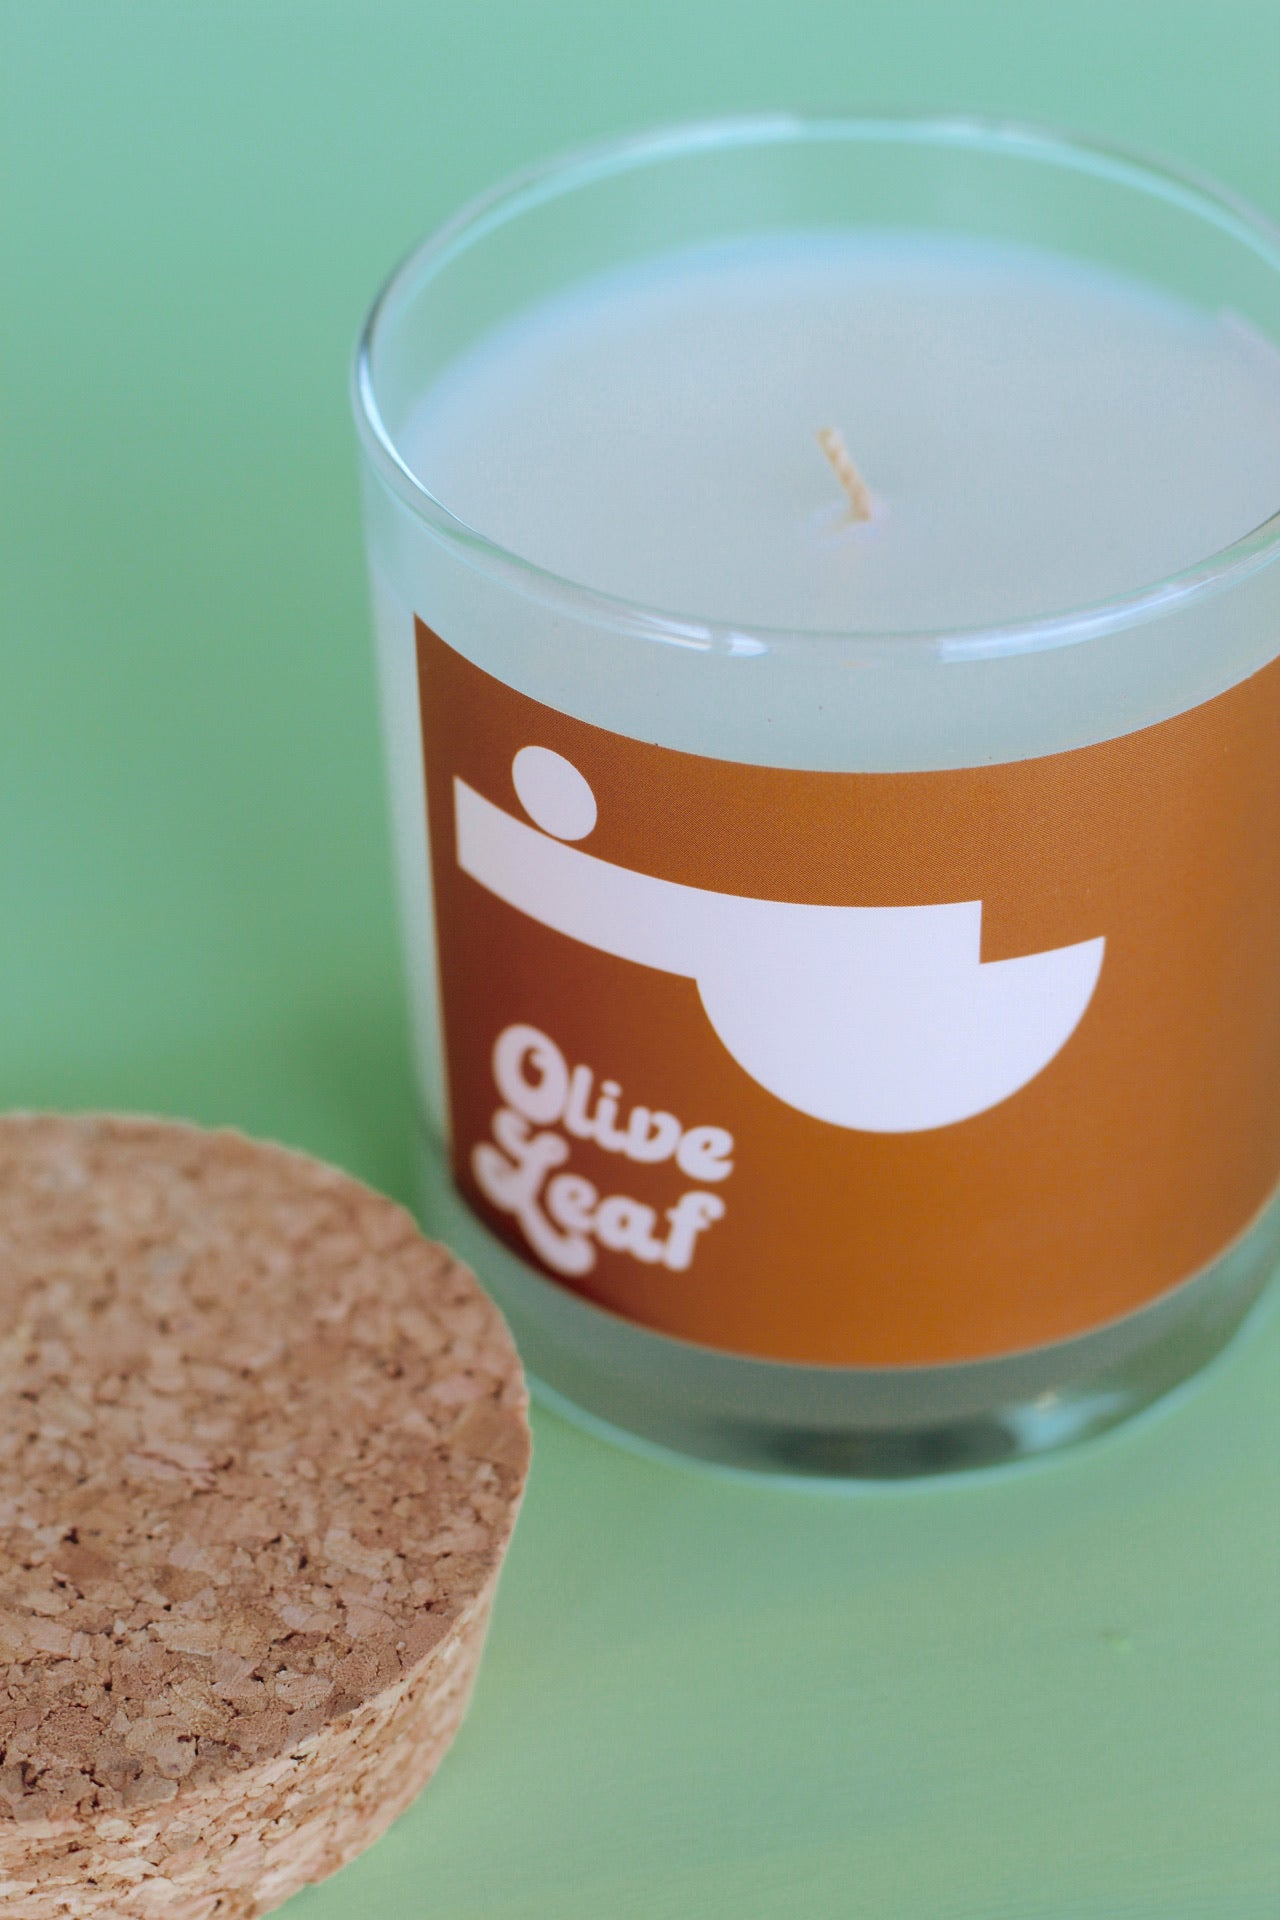 Ginger June Candle Co. - Olive Leaf Candle